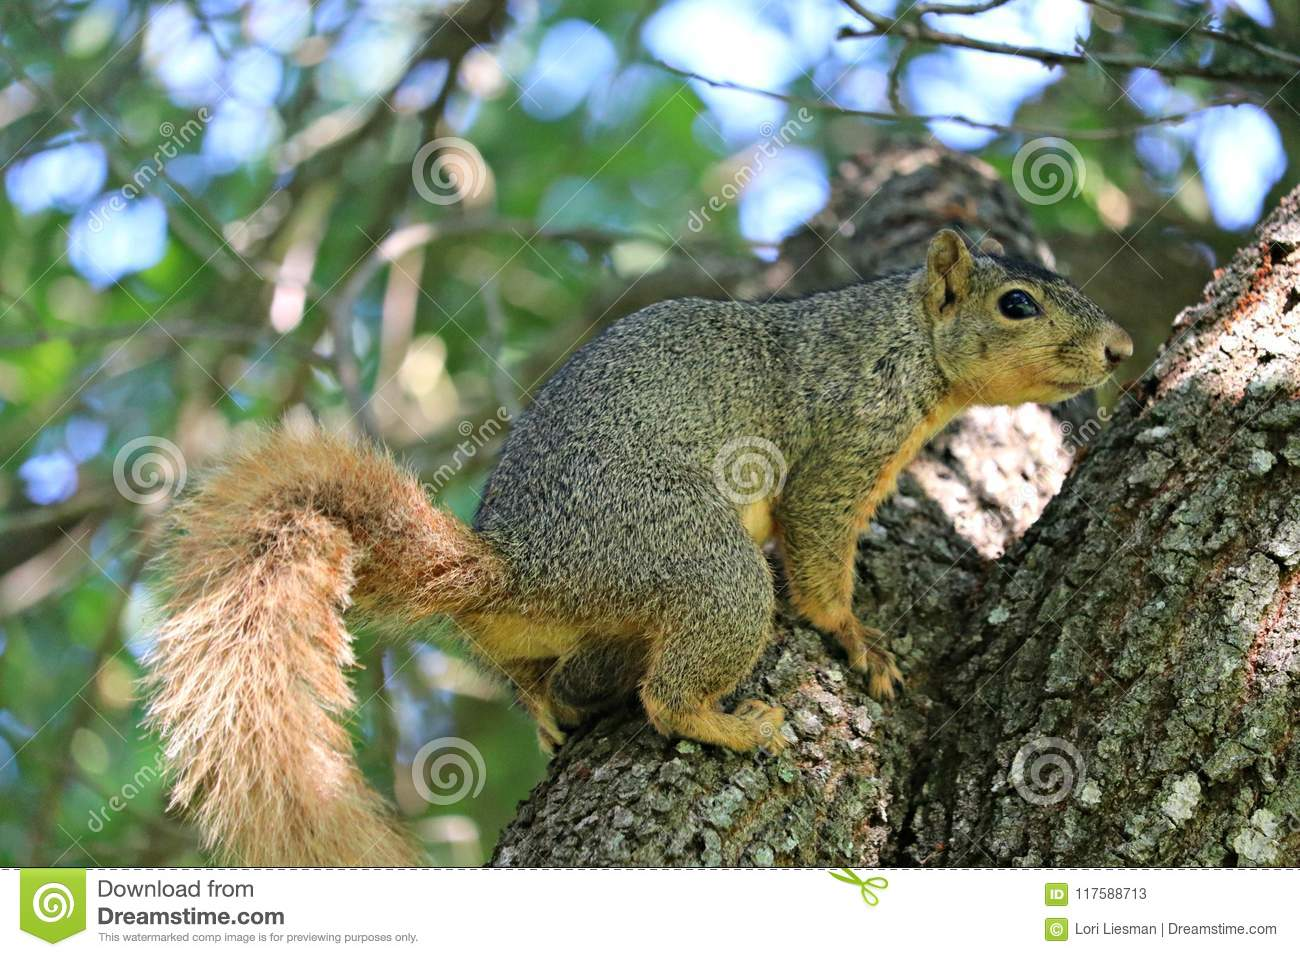 A close up of a male fox squirrel on the limb of a large oak tree.